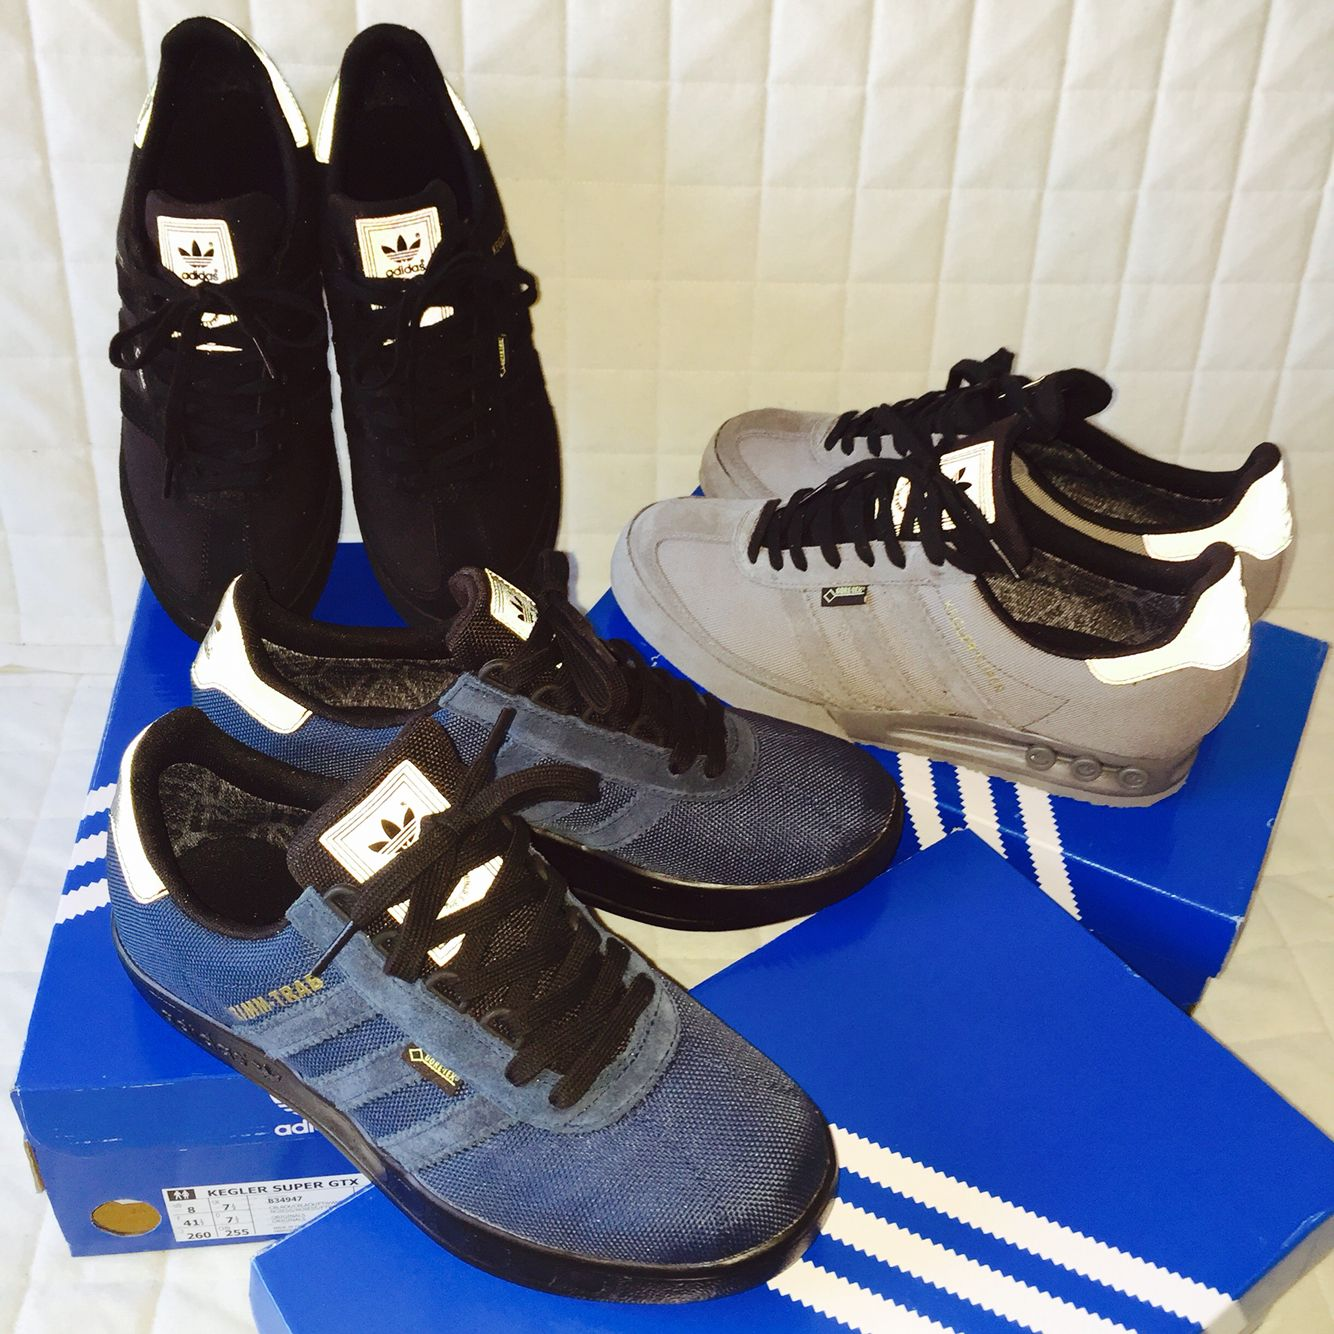 Faringe carrera Scully  Adidas x Size x Gore Tex Kegler Super & Trimm Trab GTX. | Adidas sneakers,  Sneakers, Dc sneaker